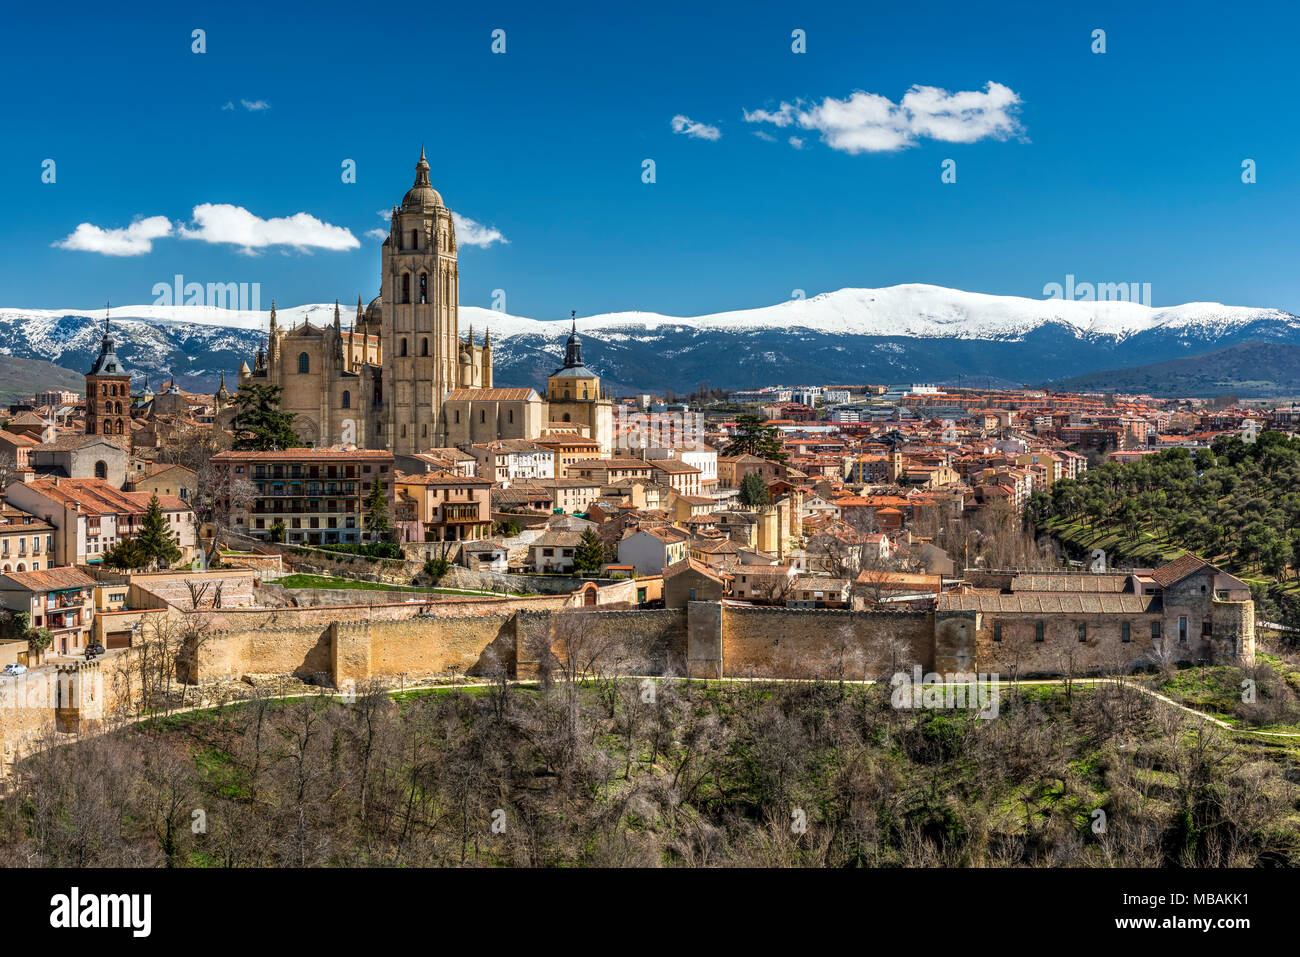 City skyline with the Gothic Cathedral and the snowy mountains of Sierra de Guadarrama in the background, Segovia, Castile and Leon, Spain Stock Photo